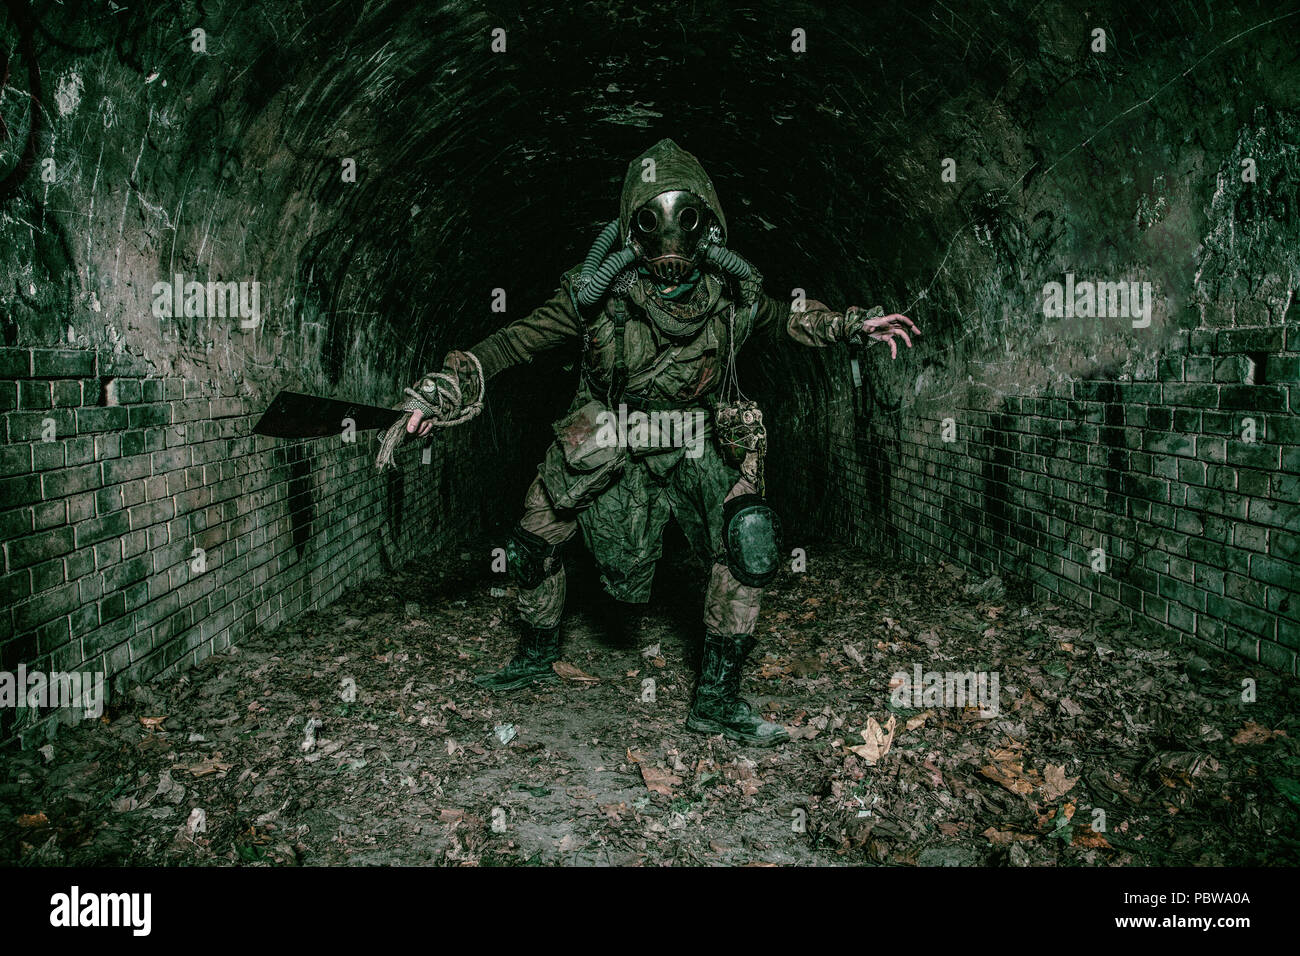 Post apocalyptic underground creature in gas mask - Stock Image